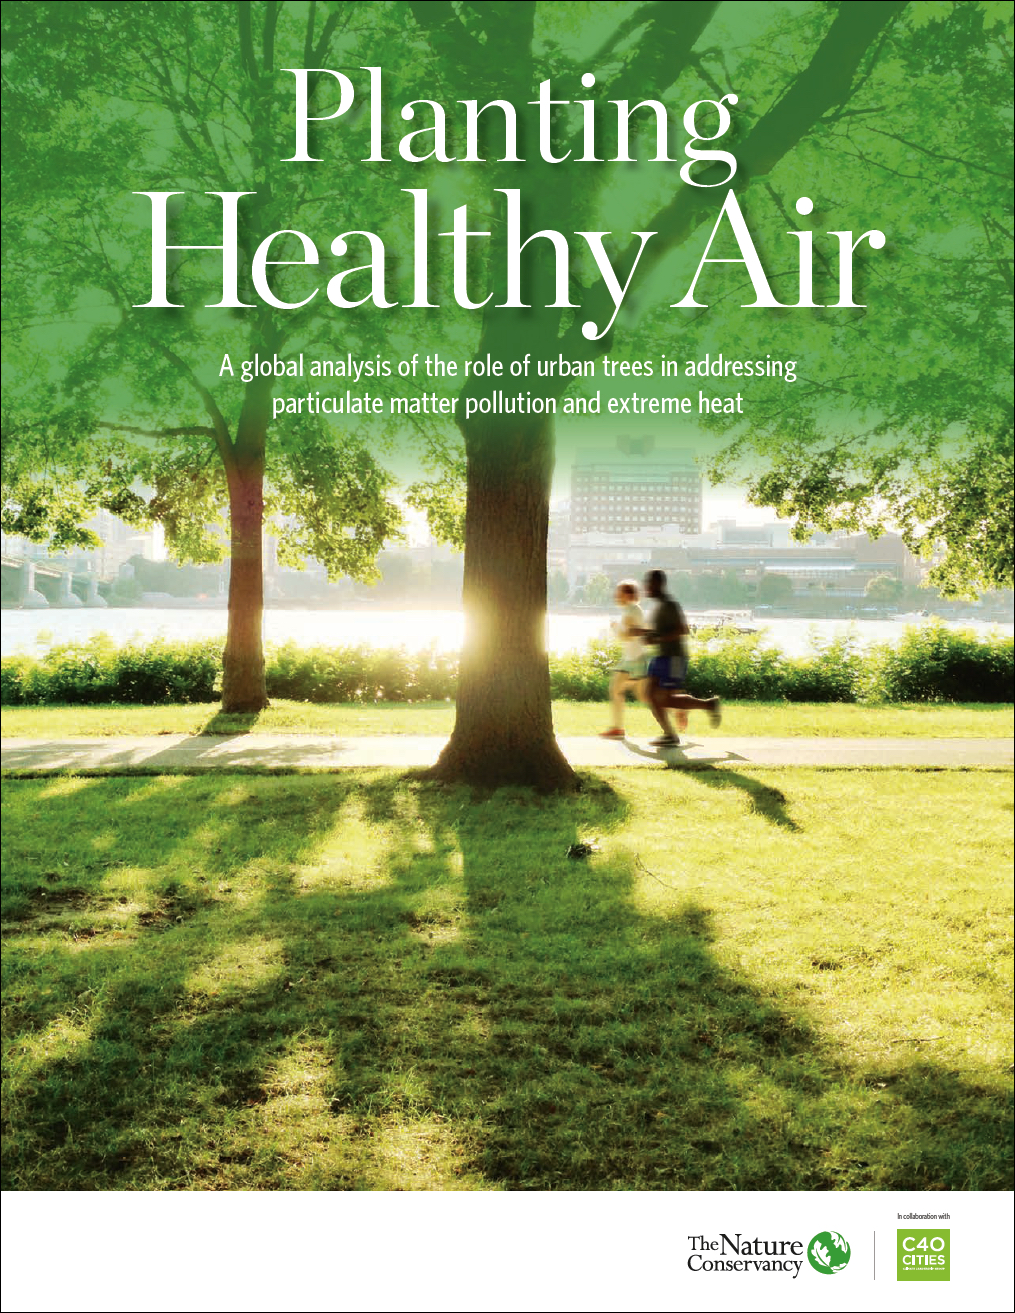 Planting Healthy Air Report - A global analysis of the role of urban trees in addressing particulate matter pollution and extreme heat.